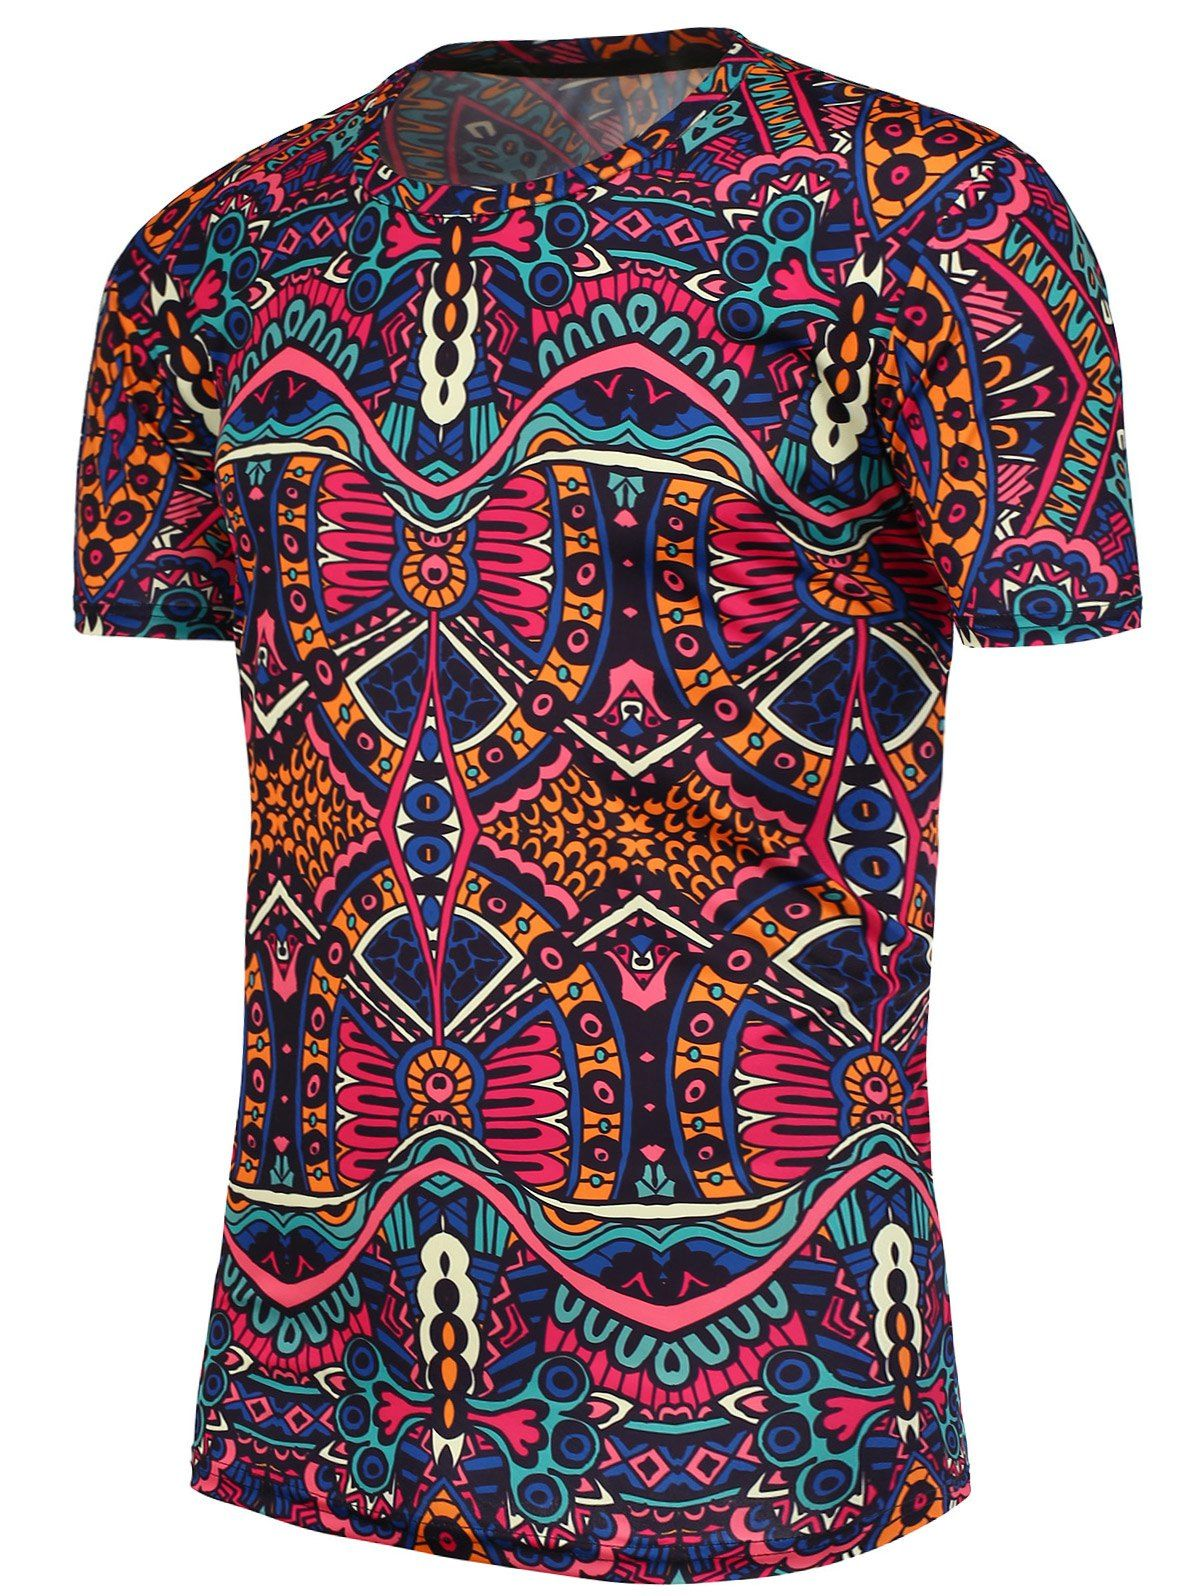 National pattern short sleeves tshirt menus fashion men closet